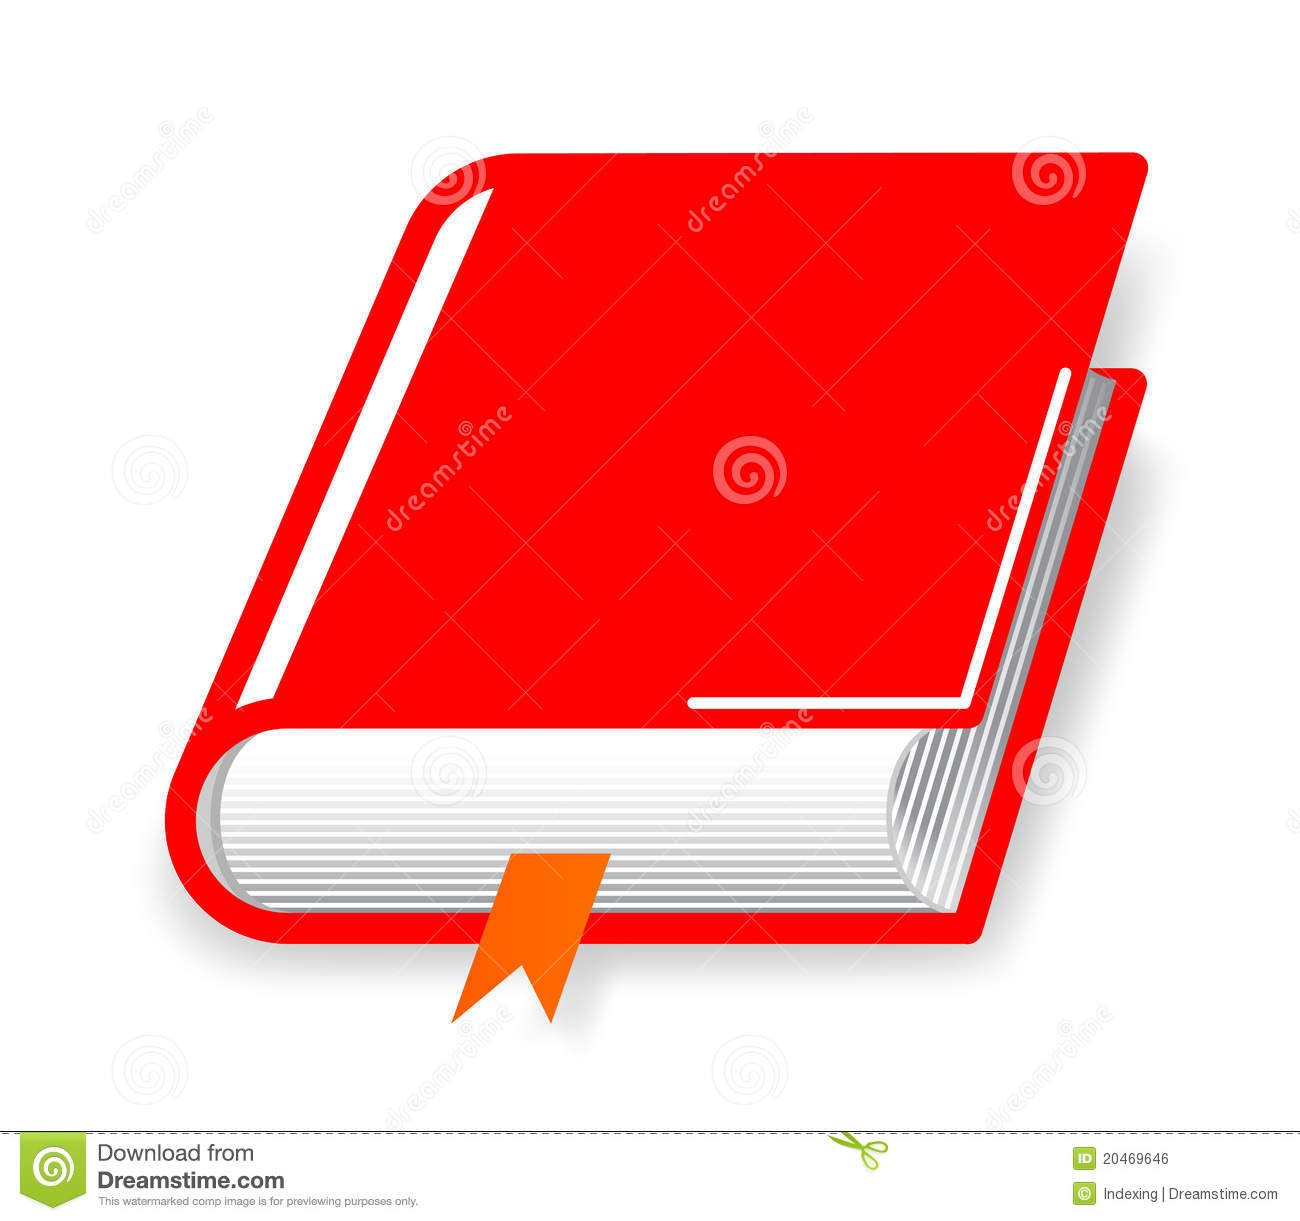 Red Book Diary Notebook Royalty Free Stock Image Image  : red book diary notebook 20469646 from www.dreamstime.com size 1300 x 1221 jpeg 102kB